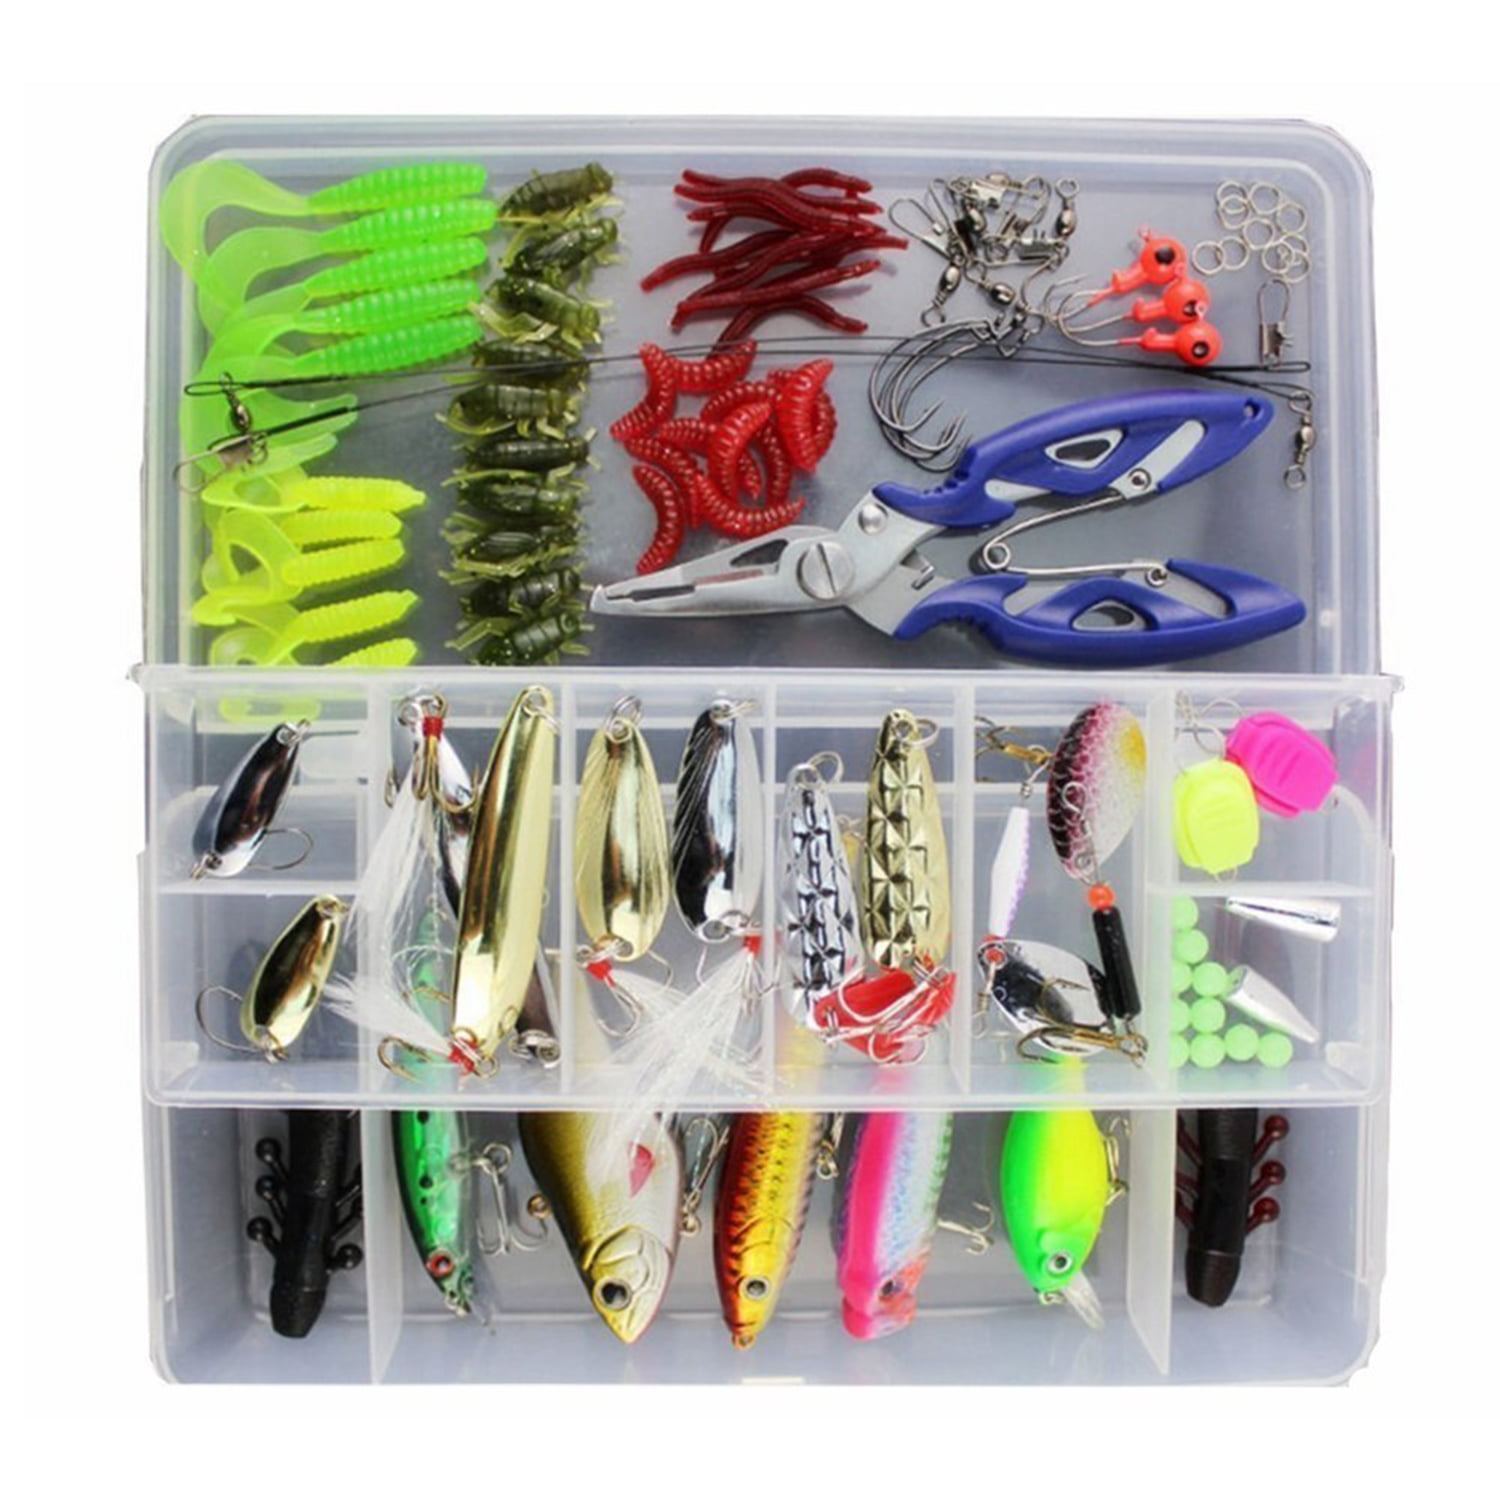 Fishing Lures Set with Tackle Box, Include Frog Minnow Popper Pencil Crank Spoon Spinner Maggot Shrimp Baits Swivels for... by